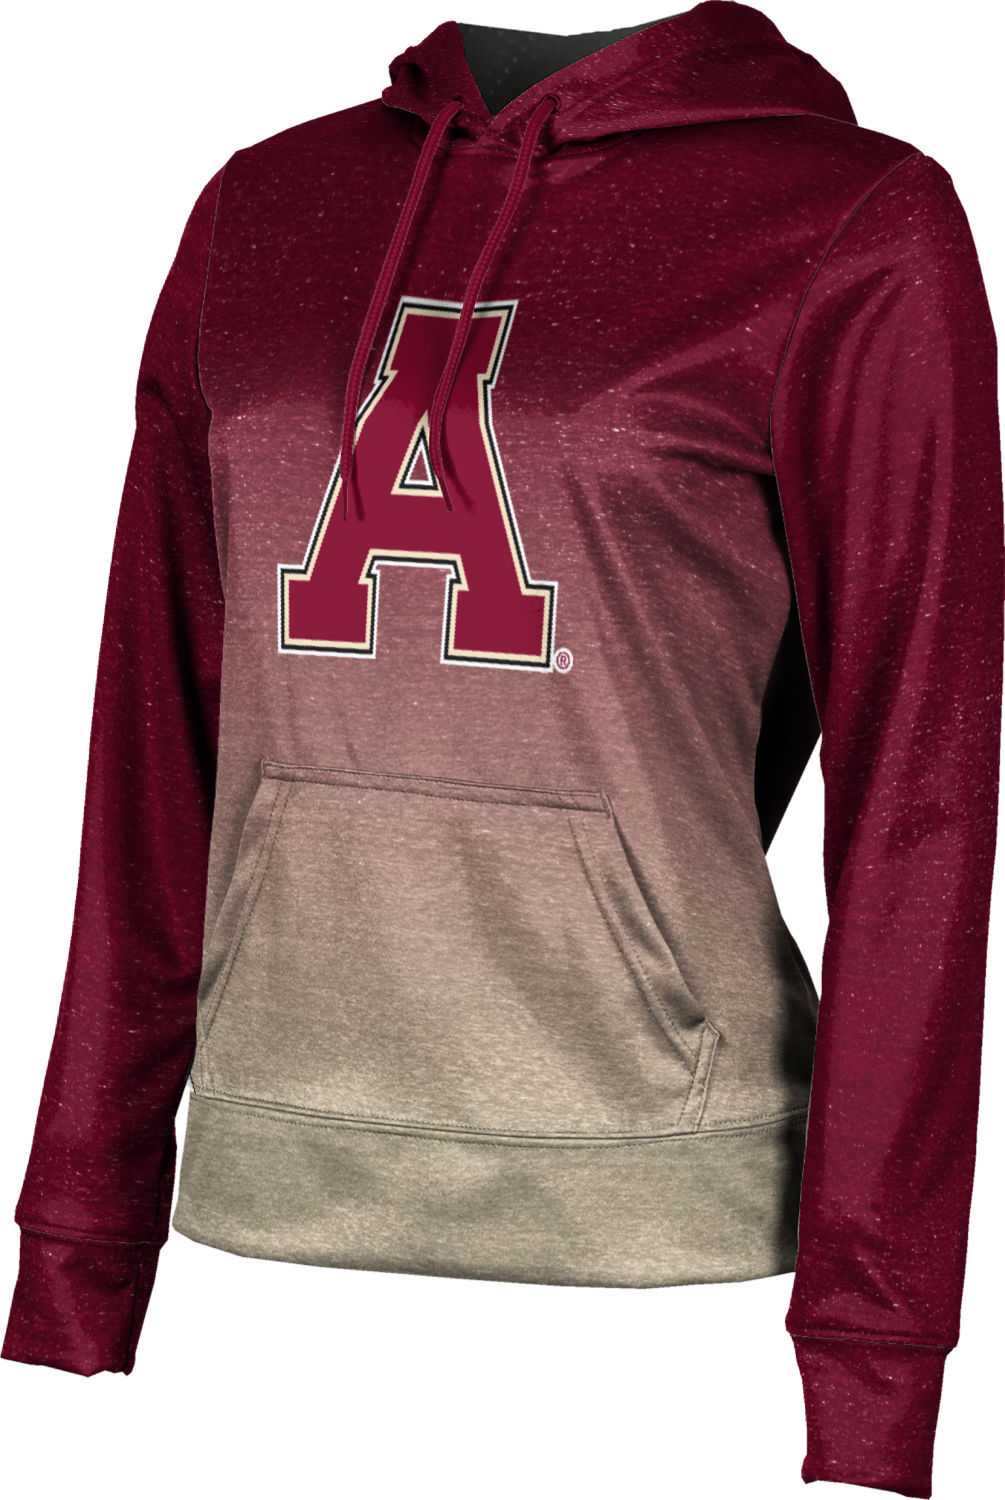 ProSphere Girls' Alma College Ombre Pullover Hoodie